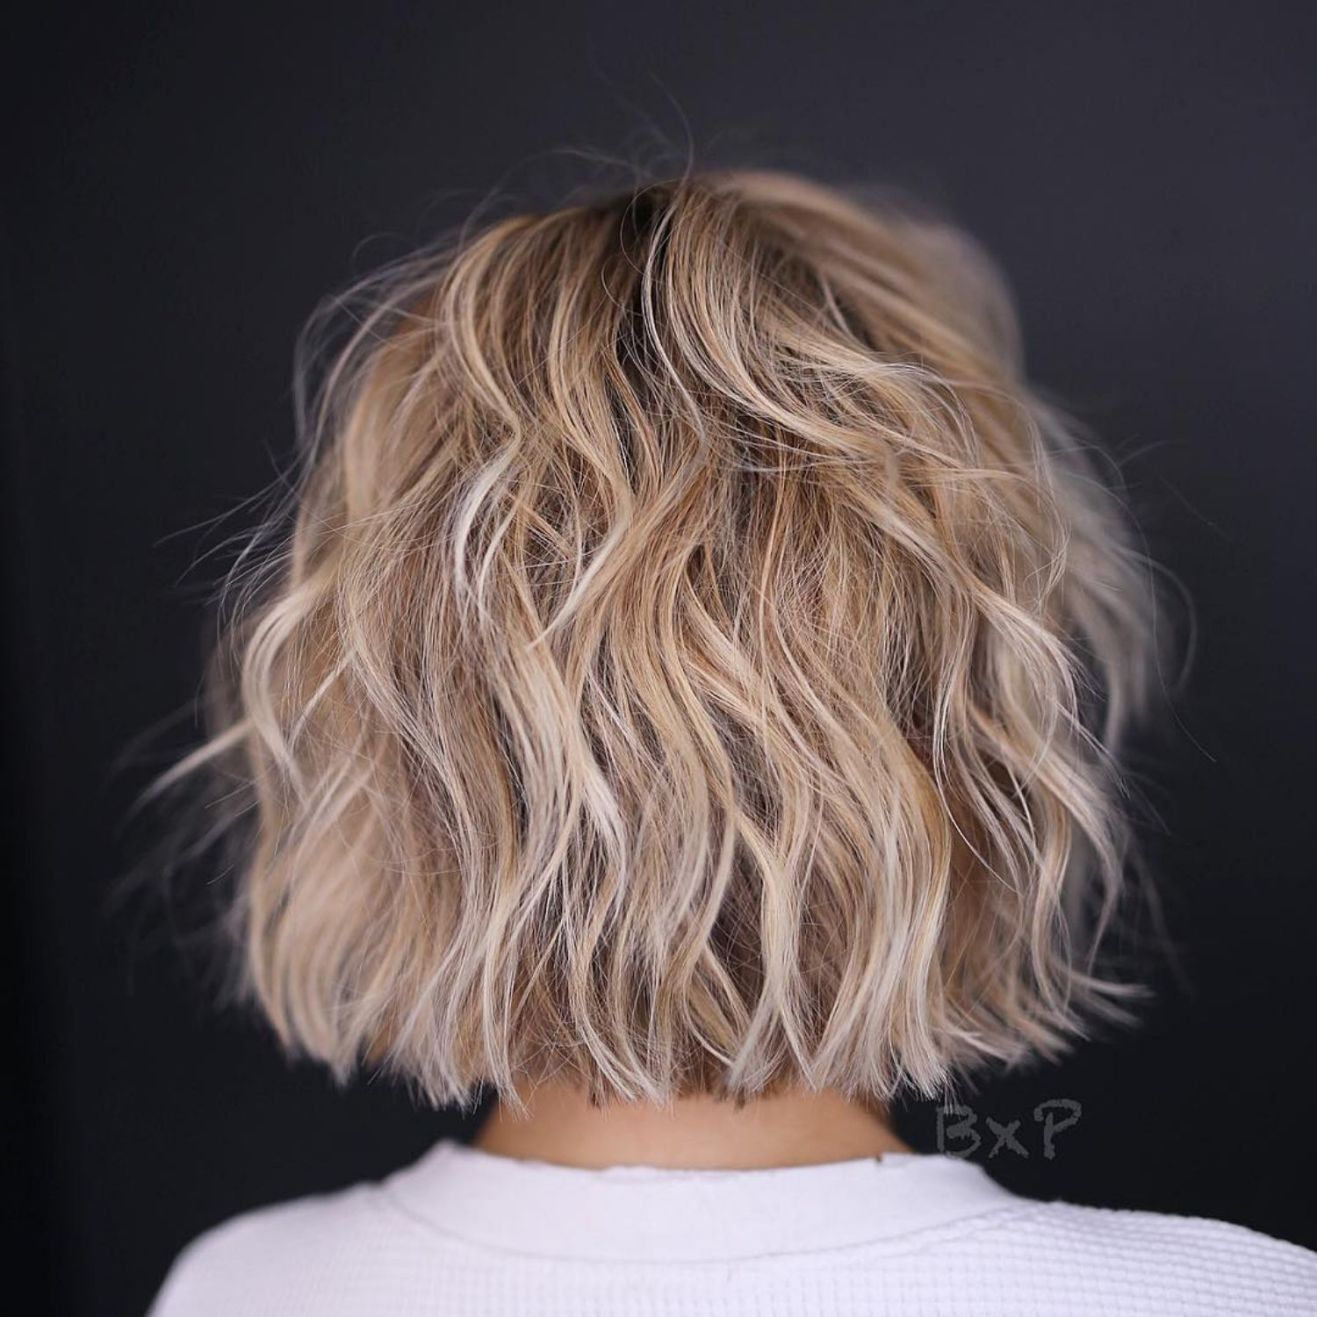 One Length Choppy Wavy Bob Thin Hair Haircuts Short Hair With Layers Haircuts For Fine Hair